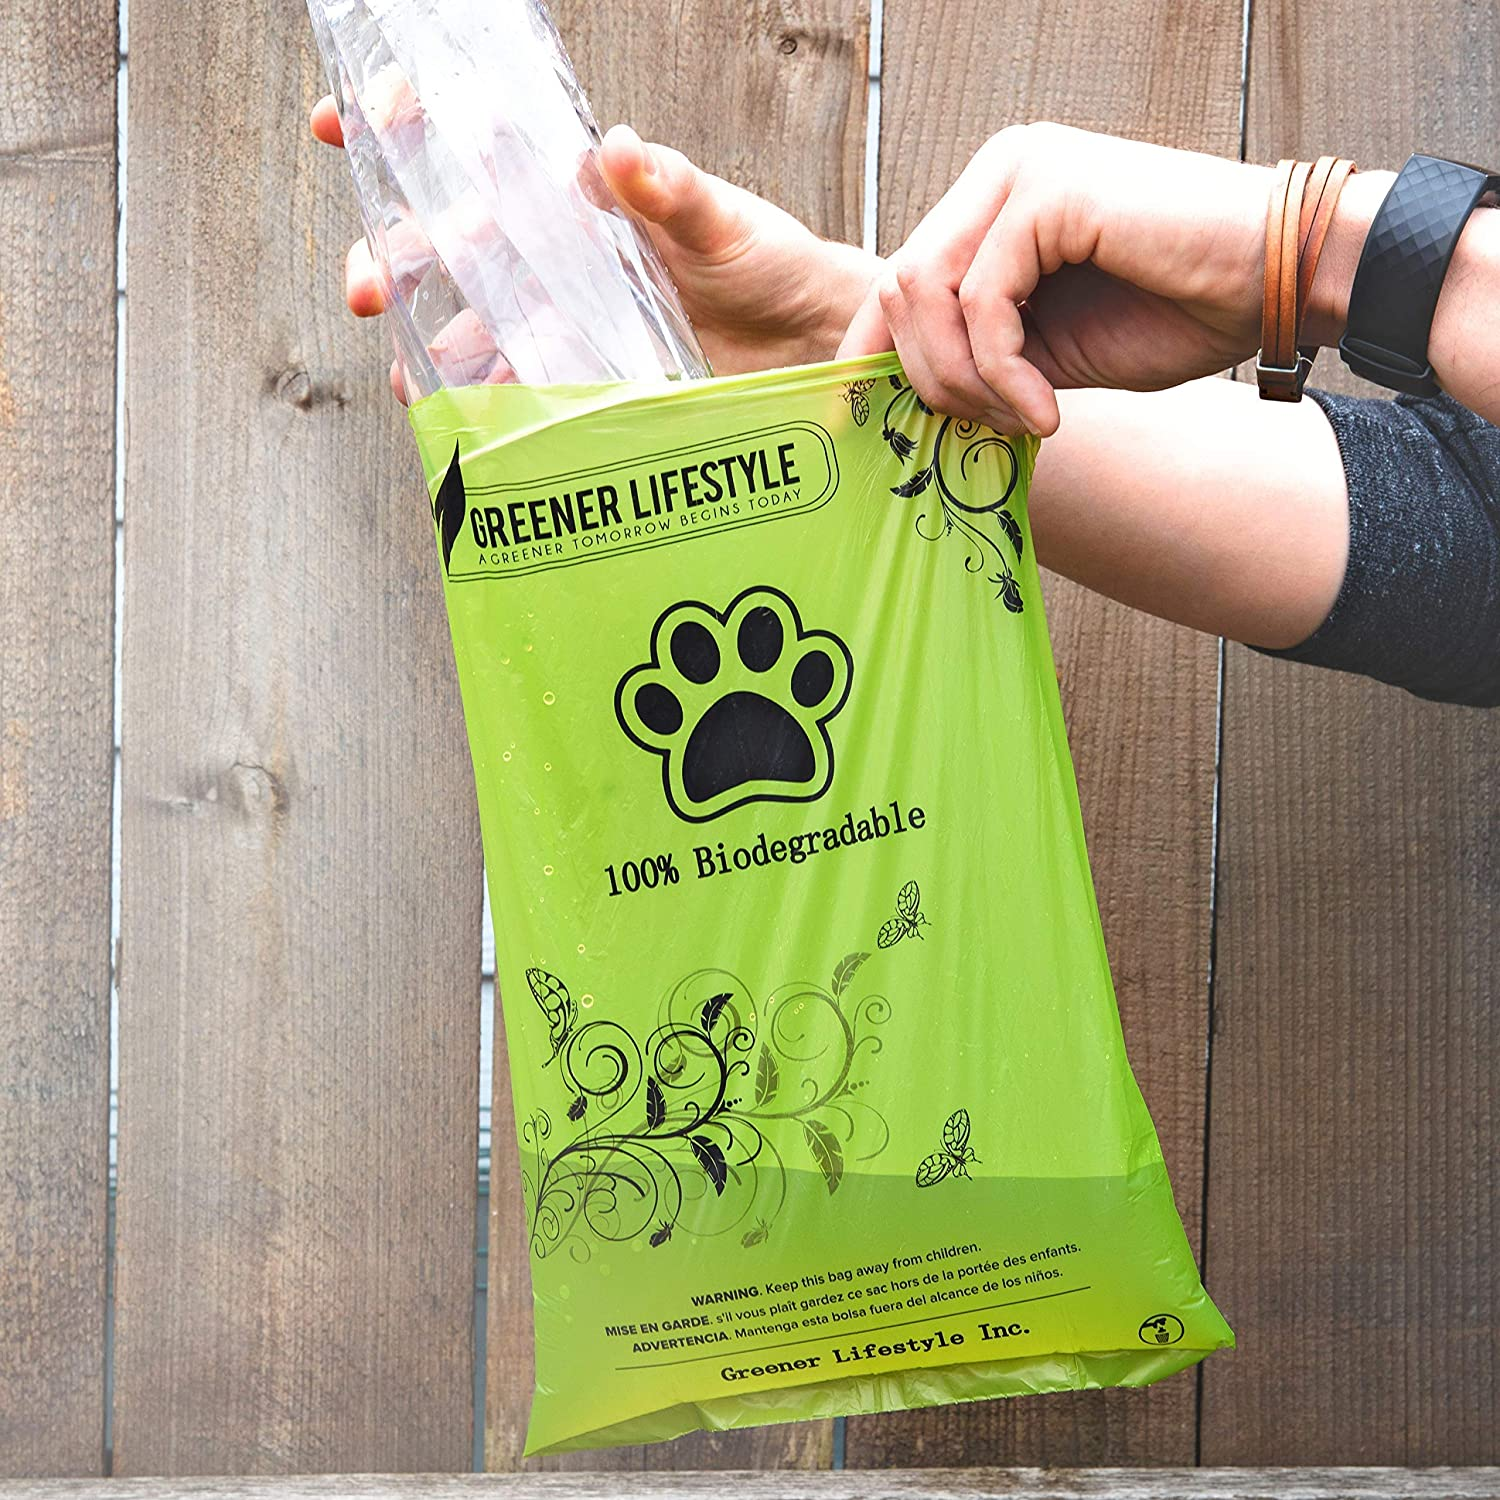 Amazon.com: Greener Lifestyle Dog Waste Bags + 1 Dispenser ...